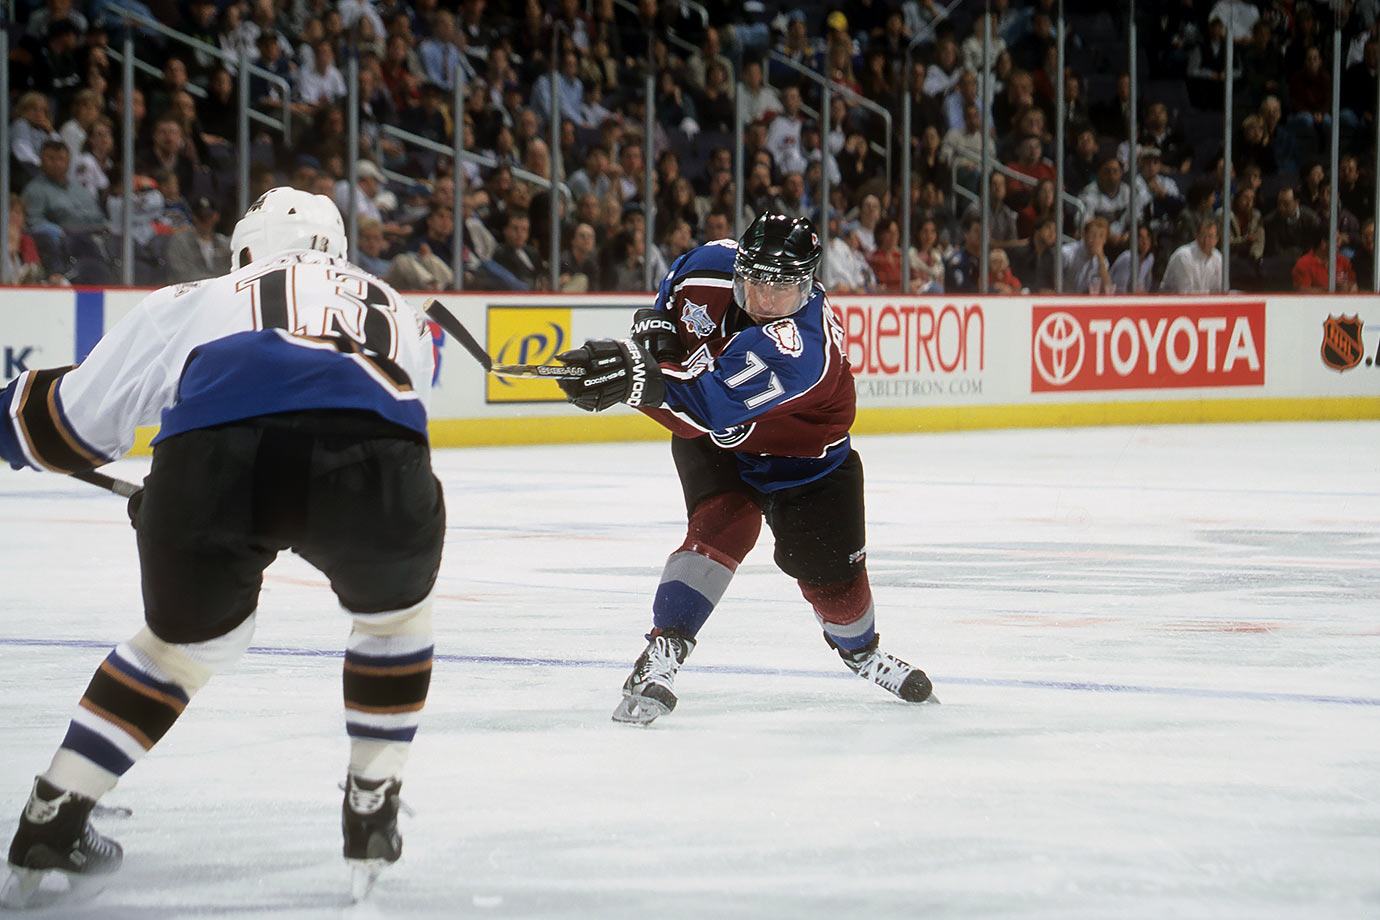 Oct. 17, 2000 — Colorado Avalanche vs. Washington Capitals